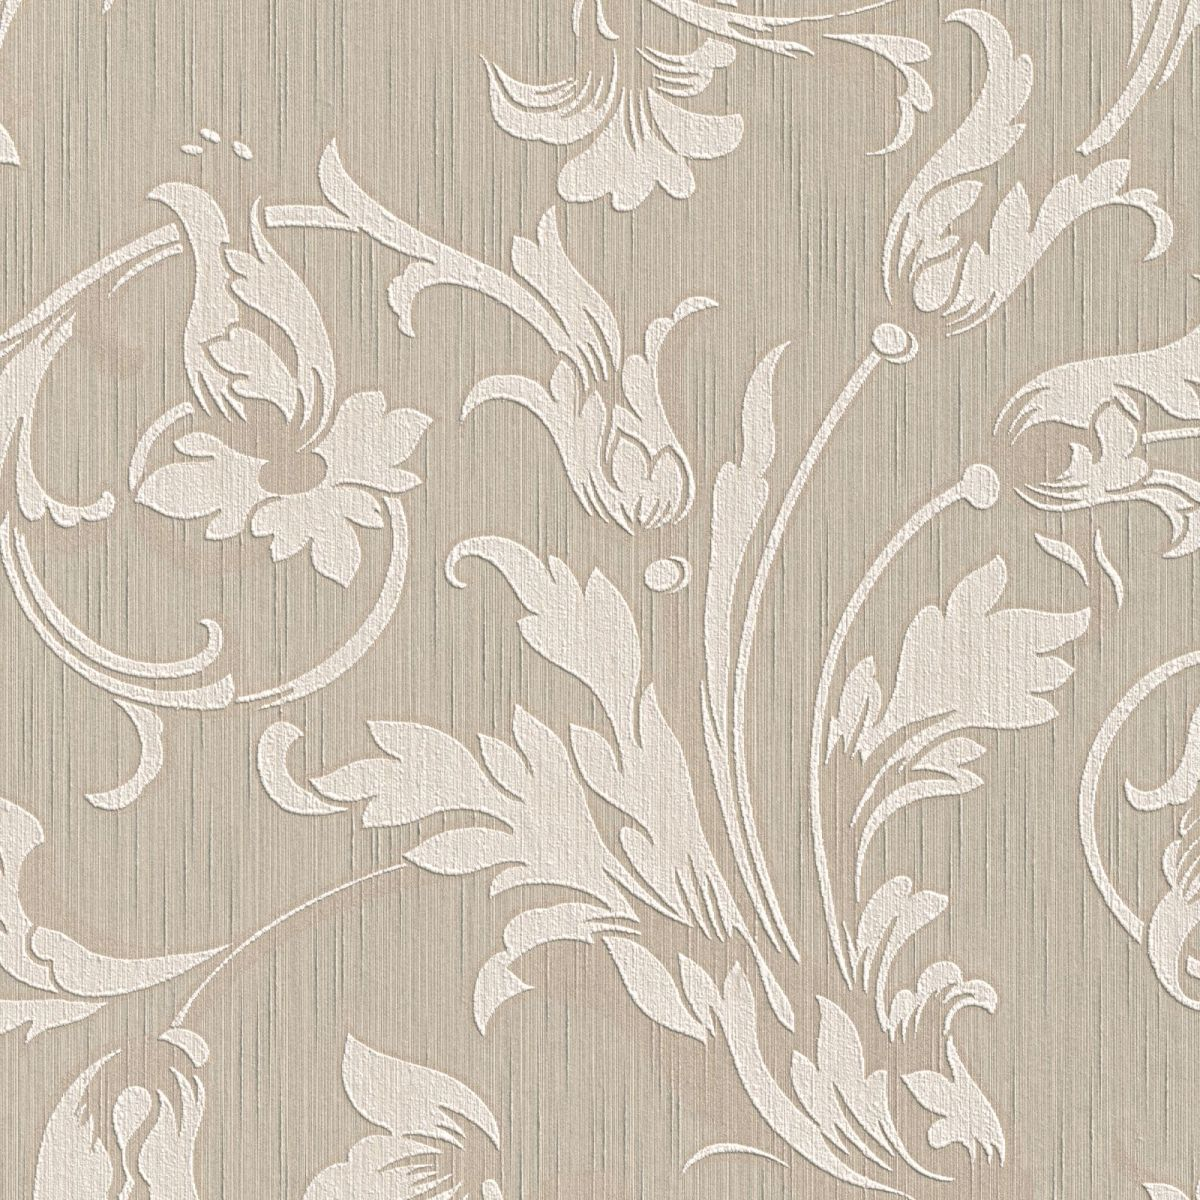 High Quality Wallpapers And Fabrics Fabric Wallpaper With Neo